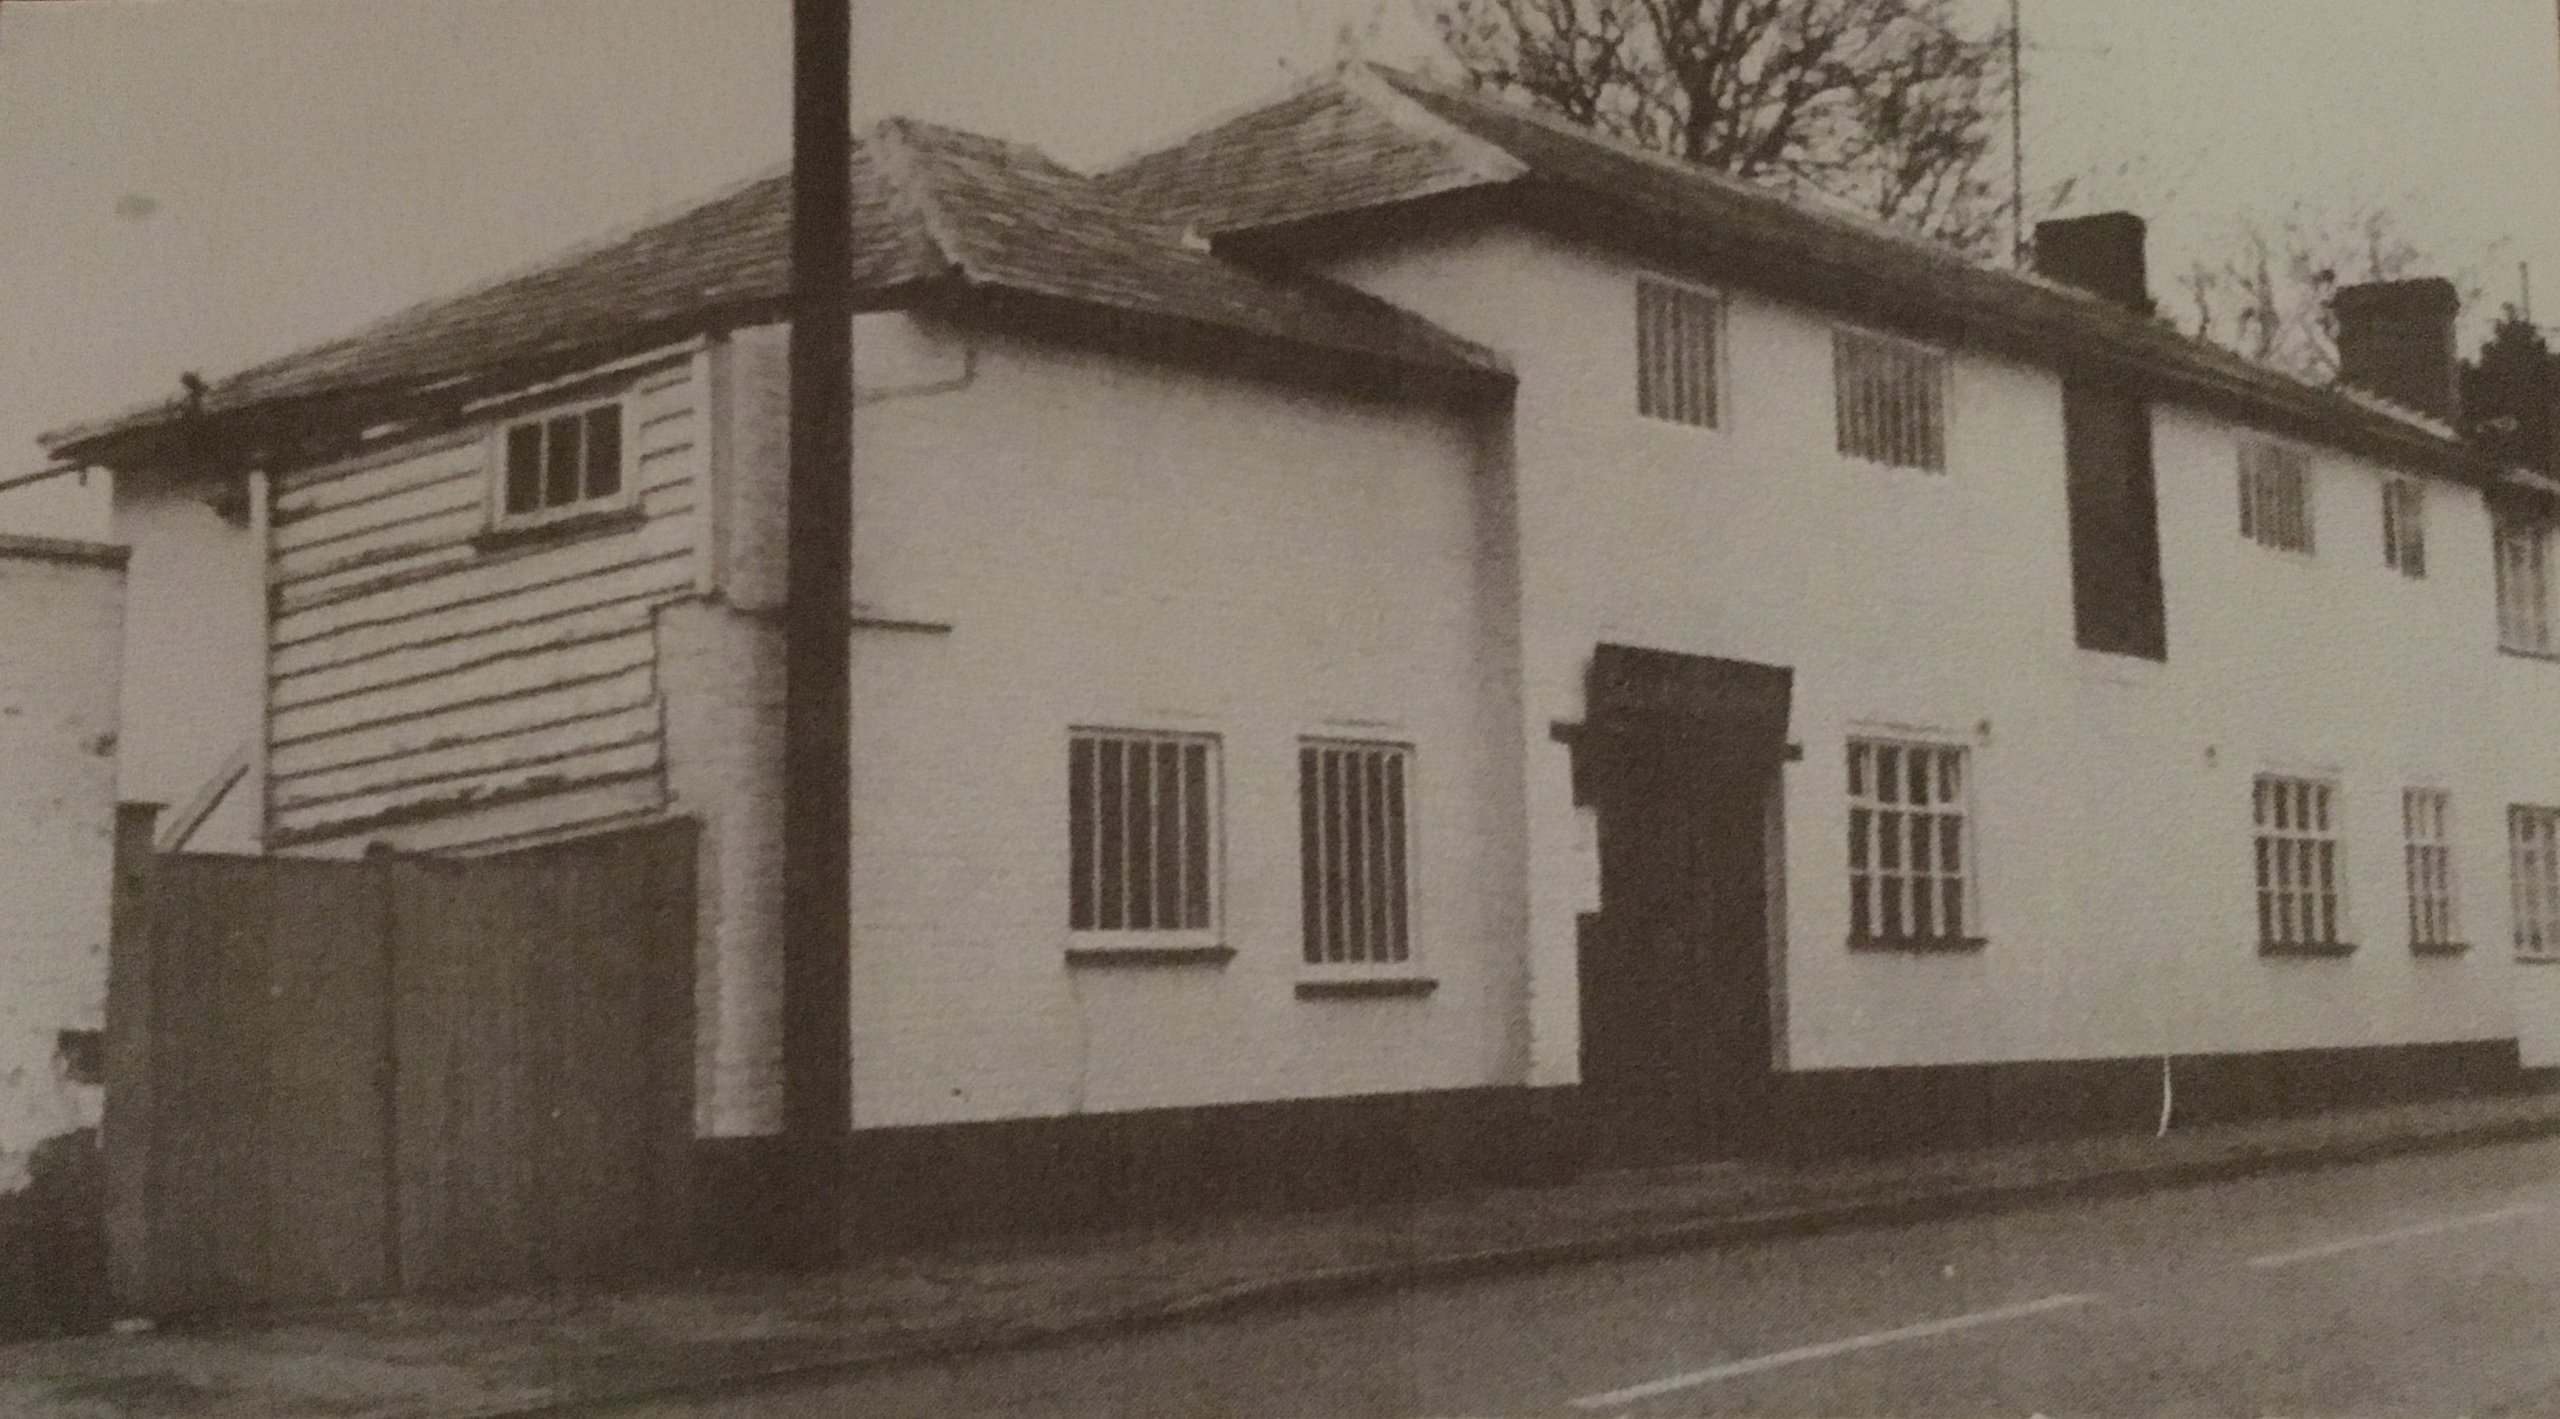 Photograph of former matting factory in High Street, taken in 1988